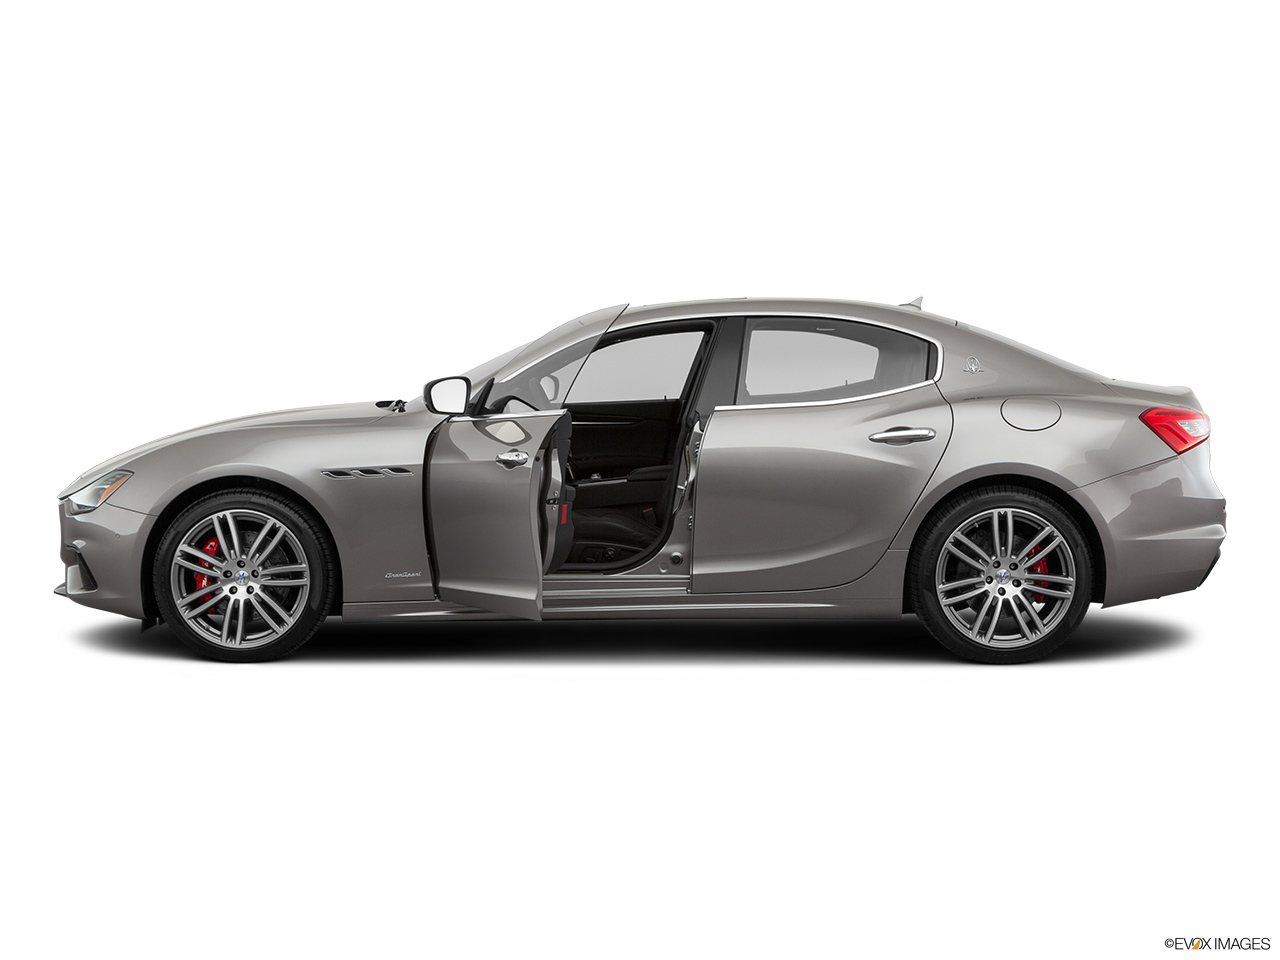 2019 Maserati Ghibli S Gransport Driver's side profile with drivers side door open.